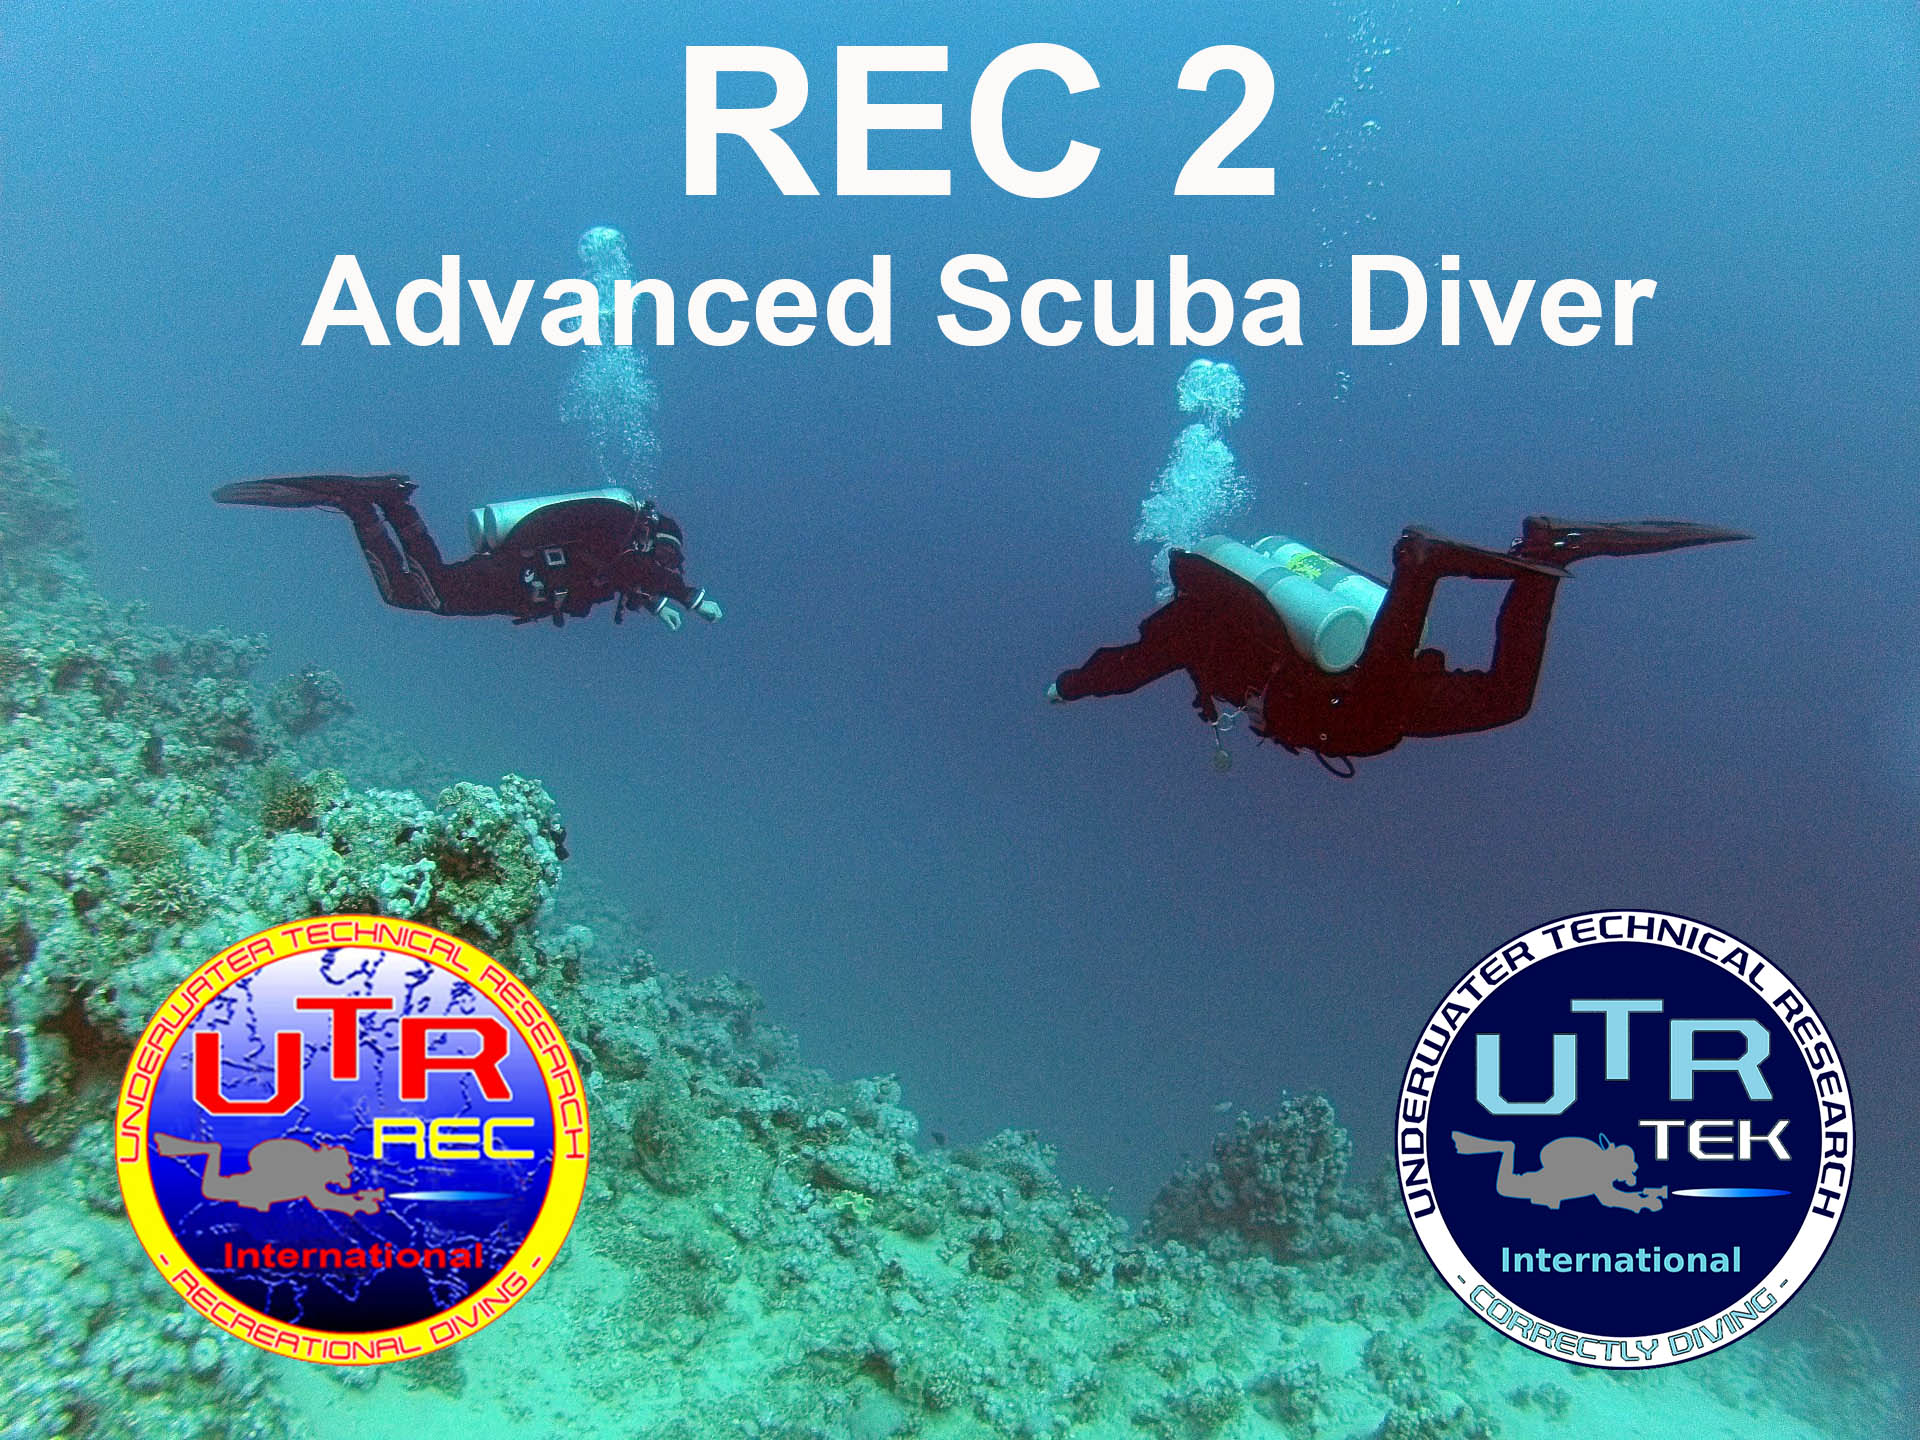 REC 2 - ADVANCED SCUBA DIVER